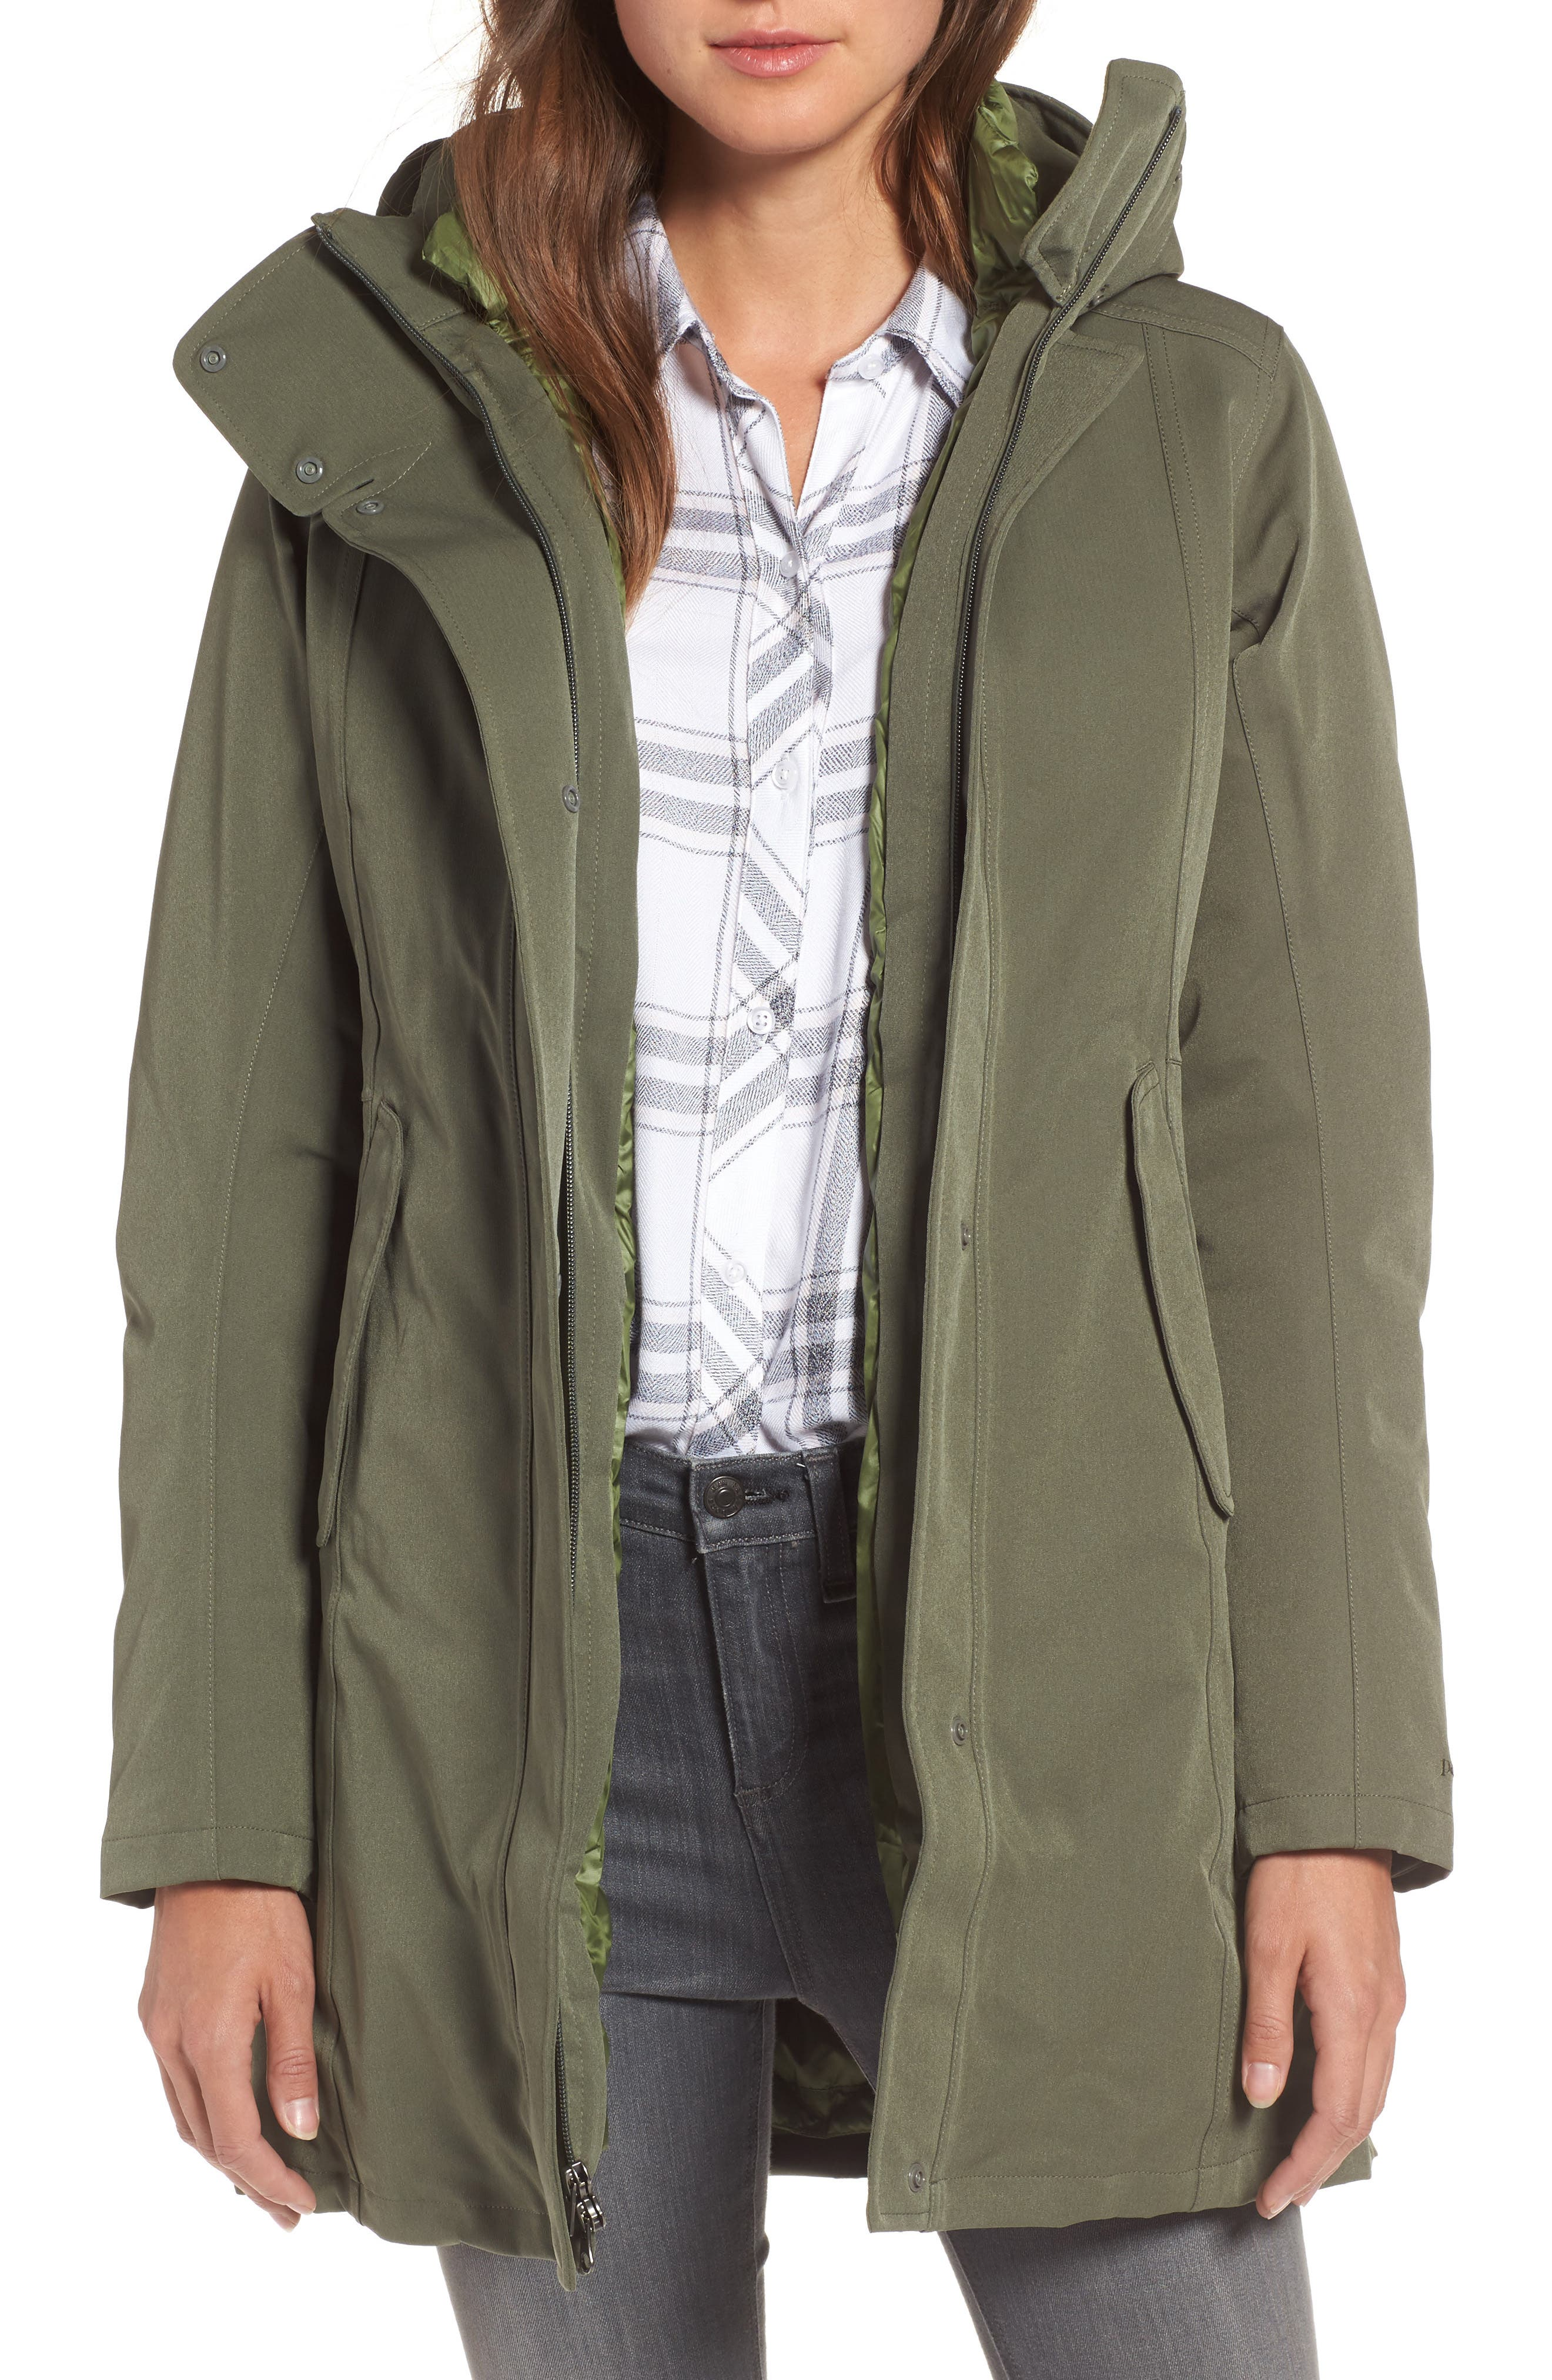 Tres Waterproof 3-in-1 Parka,                             Main thumbnail 1, color,                             301